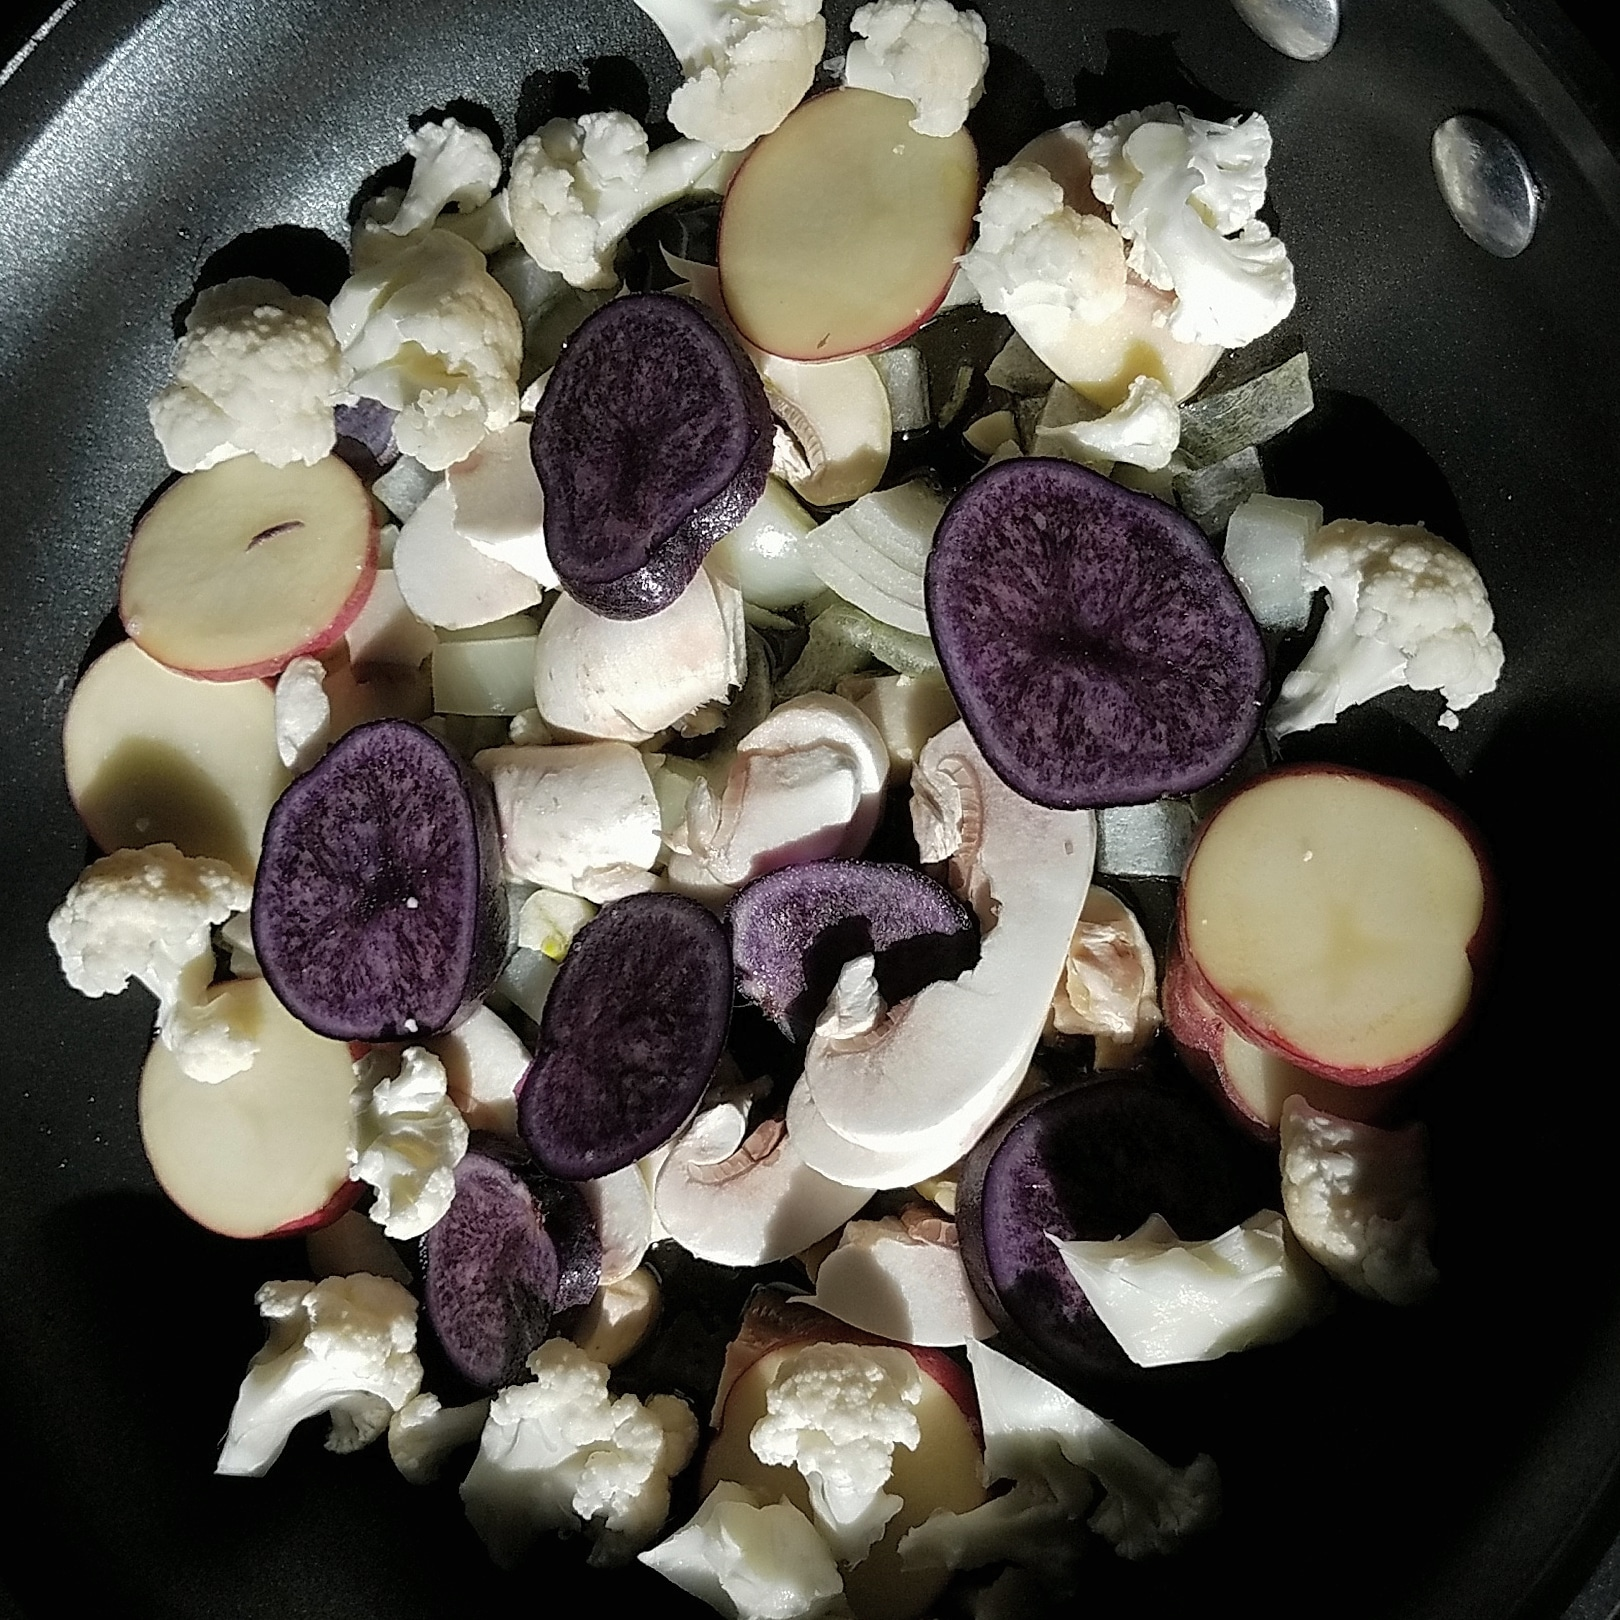 Purple potatoes, mushrooms, cauliflower and other veggies in a skillet getting ready to be cooked.